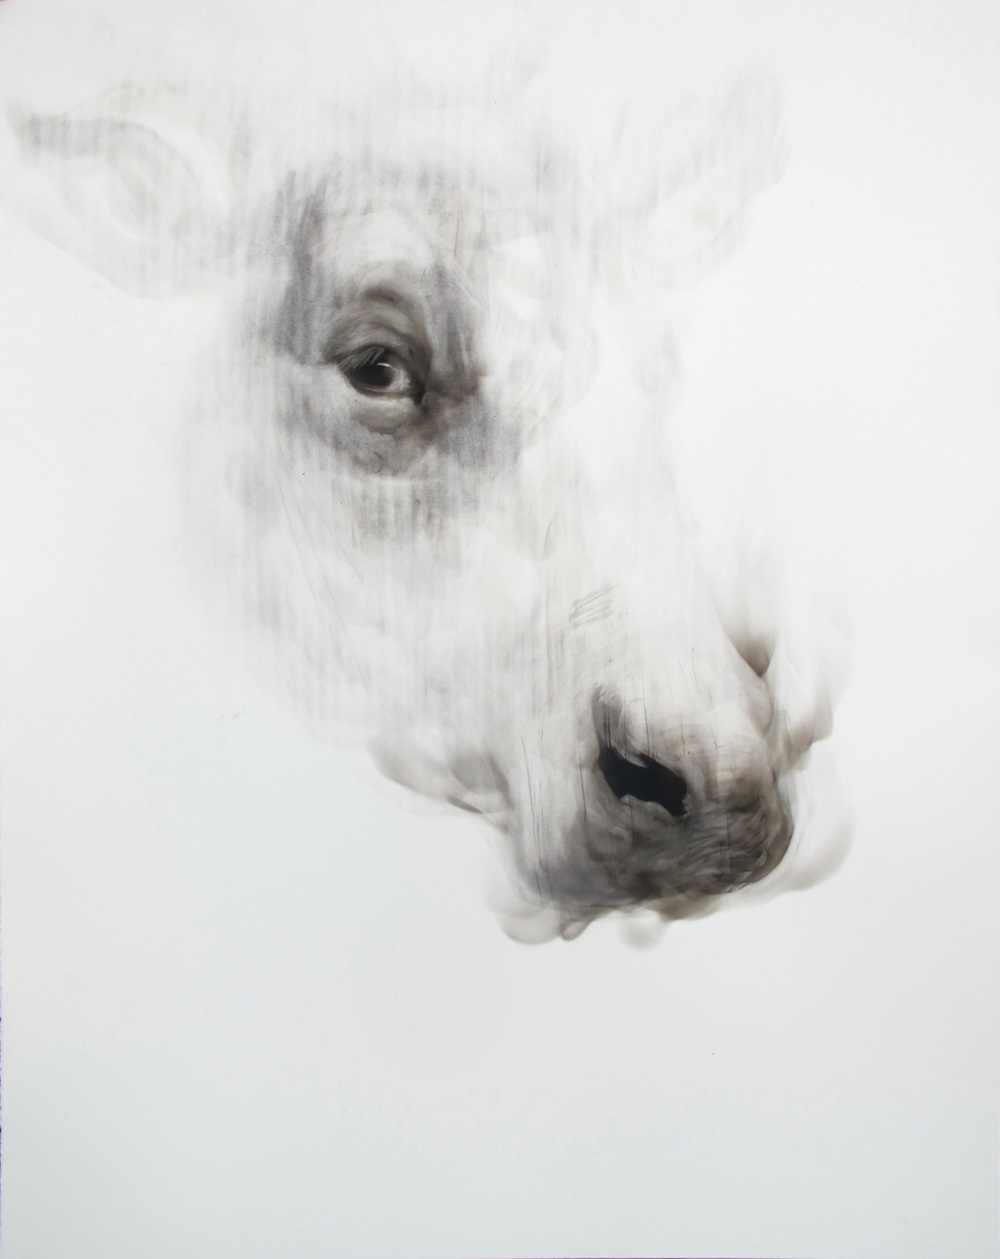 Diane Victor, Separating One's Sheep from One's Goats VIII (Smoke on Paper, I, I/I, 66 x 50.8cm)